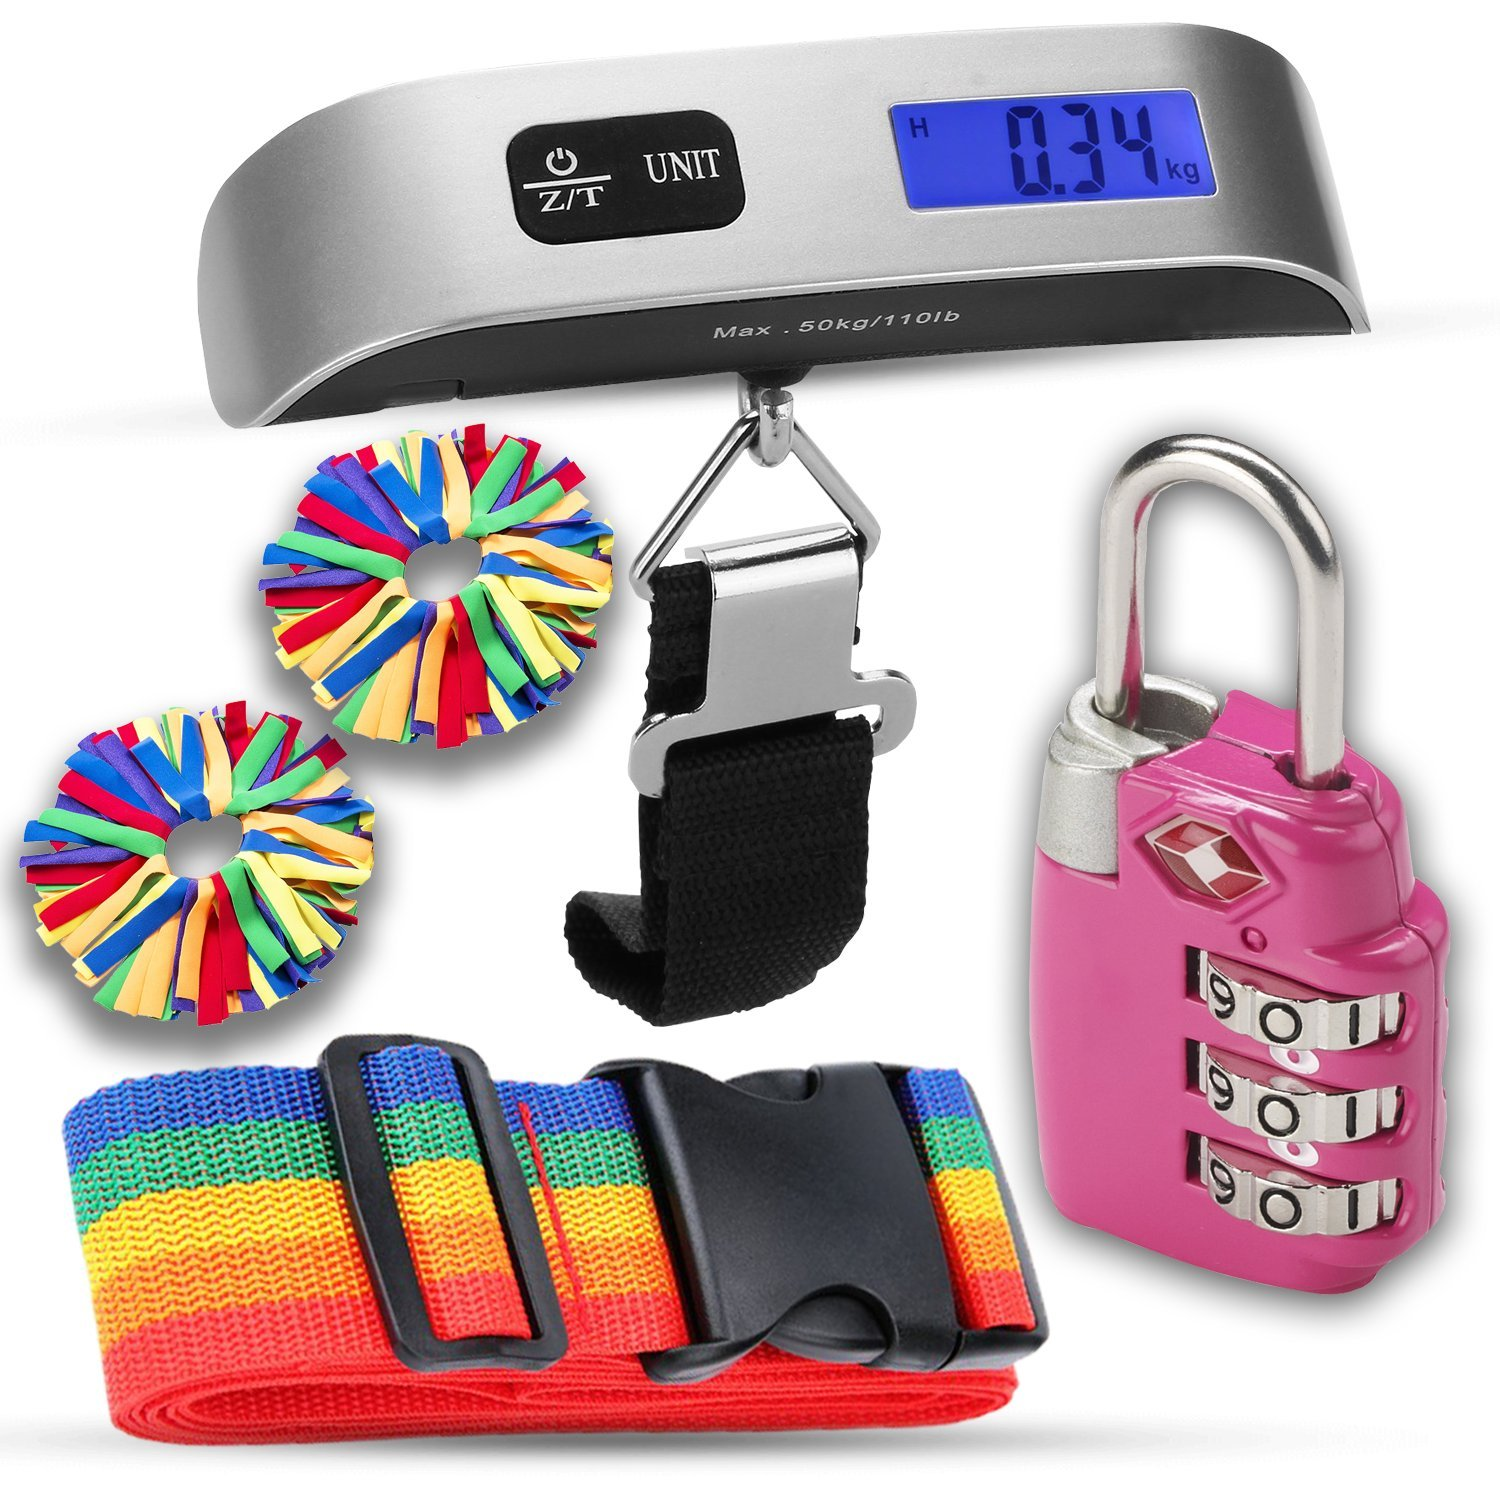 Luggage Accessories Kit, Luggage Scale, TSA Luggage Lock, pom id, luggage identifiers, great gift